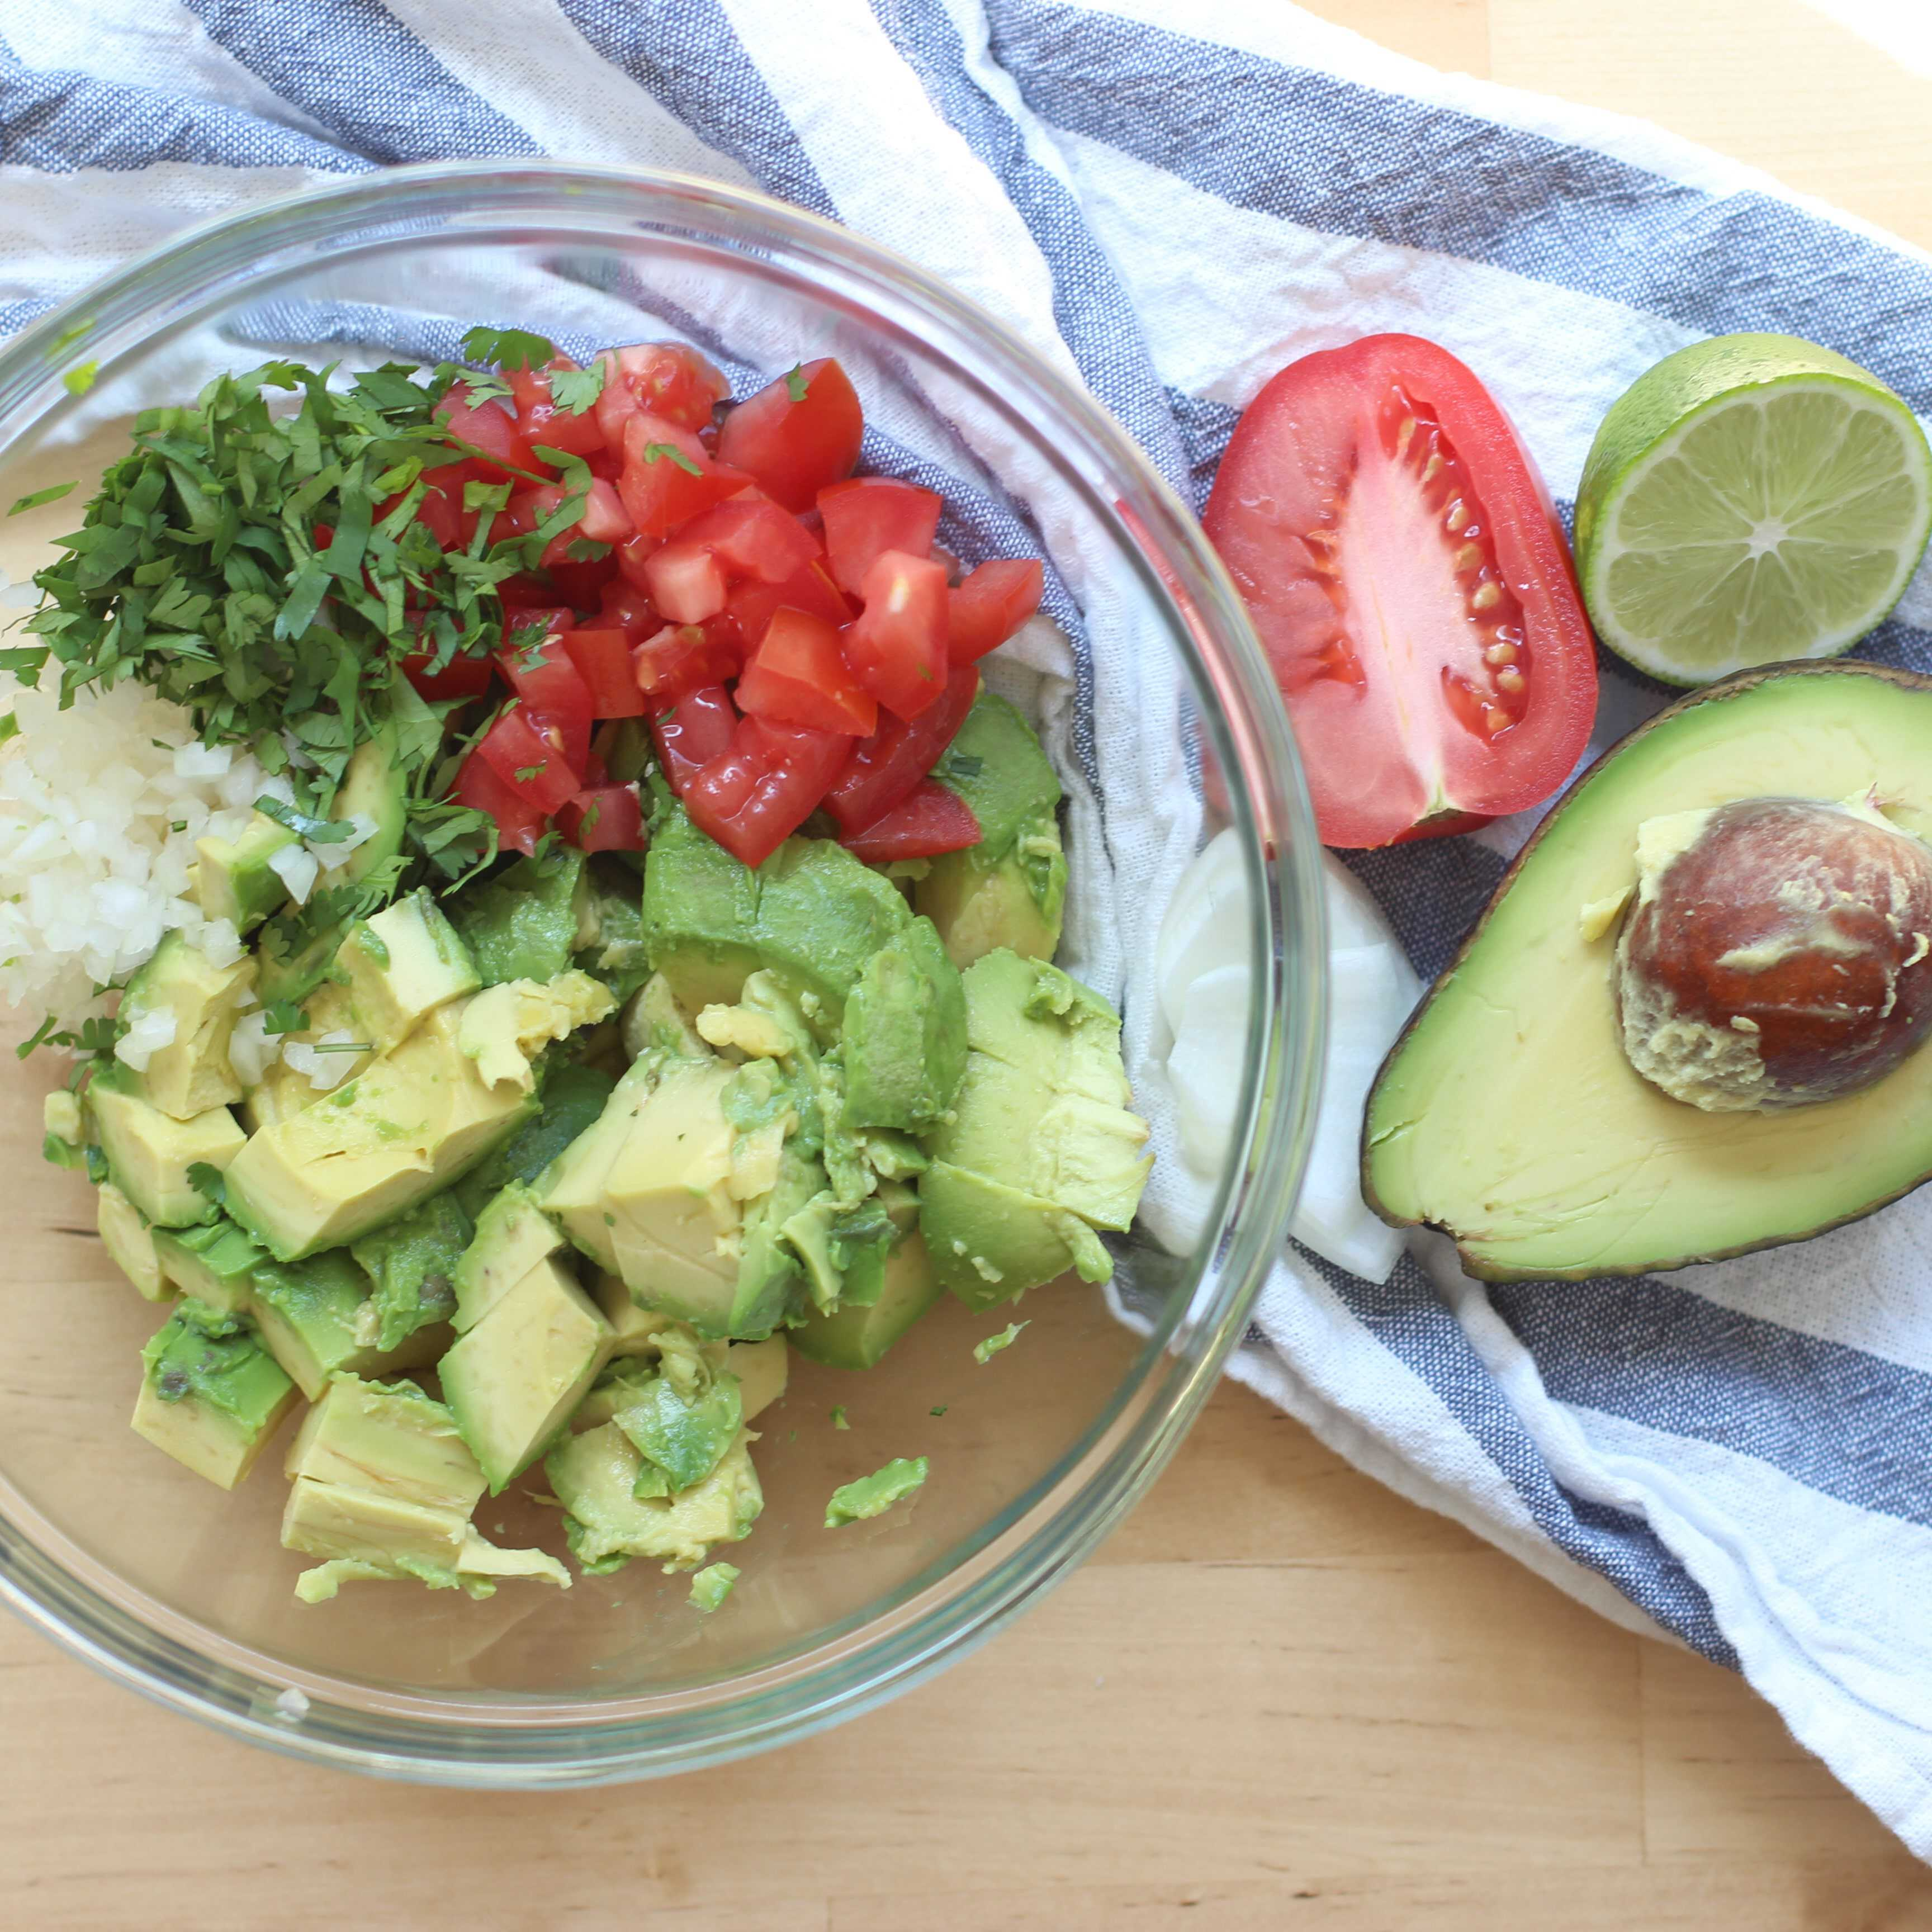 Ingredients for Homemade Chunky Guacamole